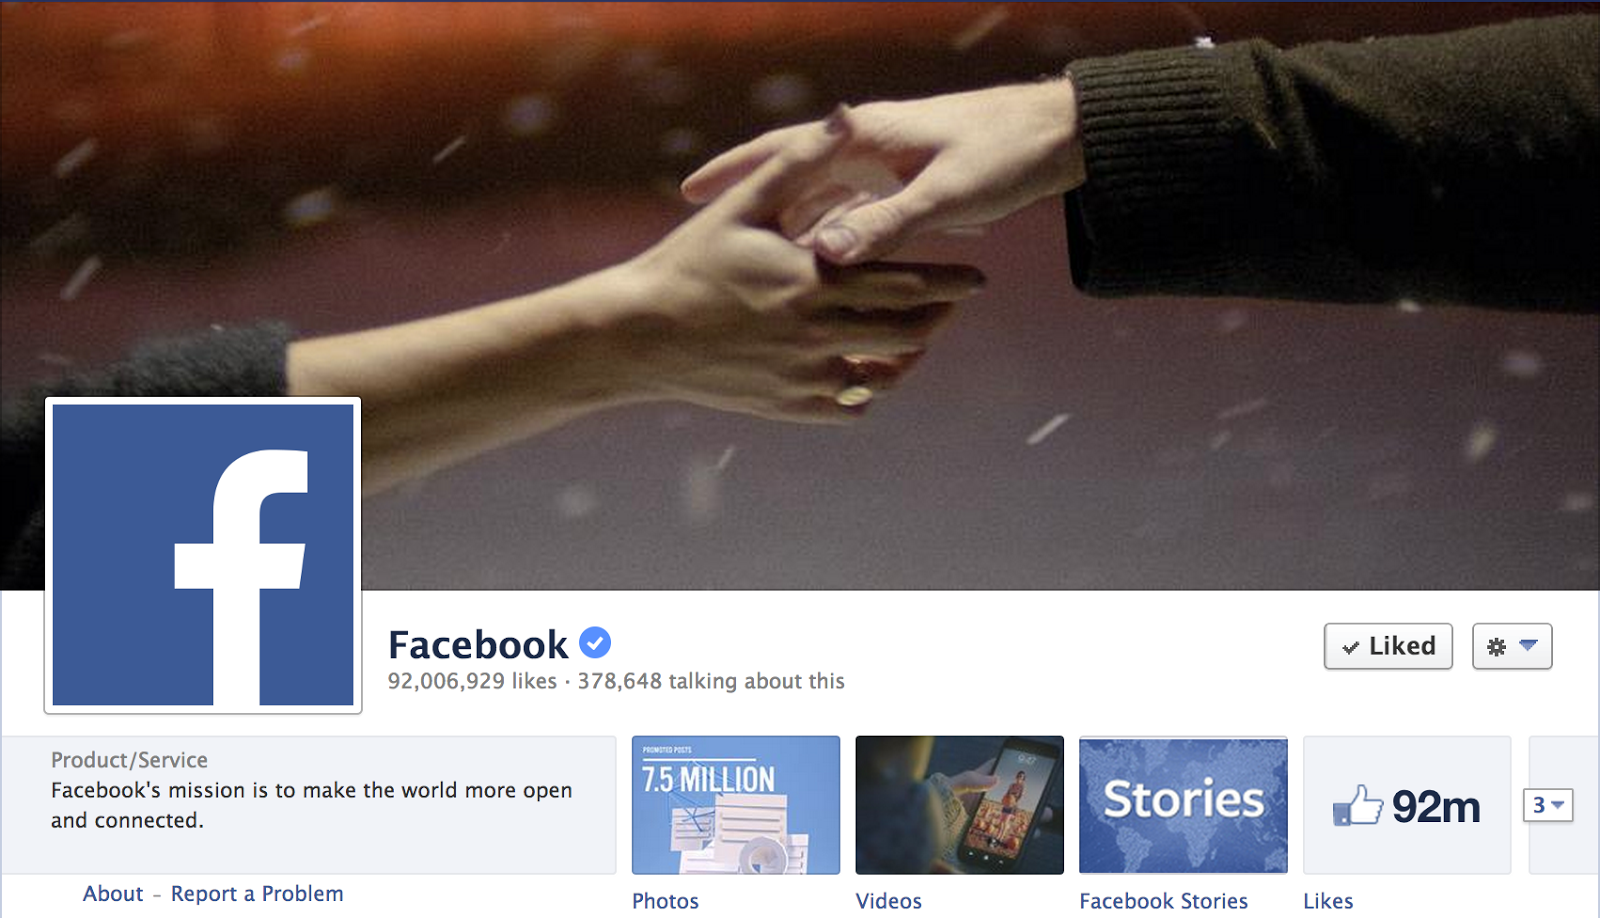 Guide to Get a Facebook Page or Profile Verified by Facebook - [Blue Tick Mark]